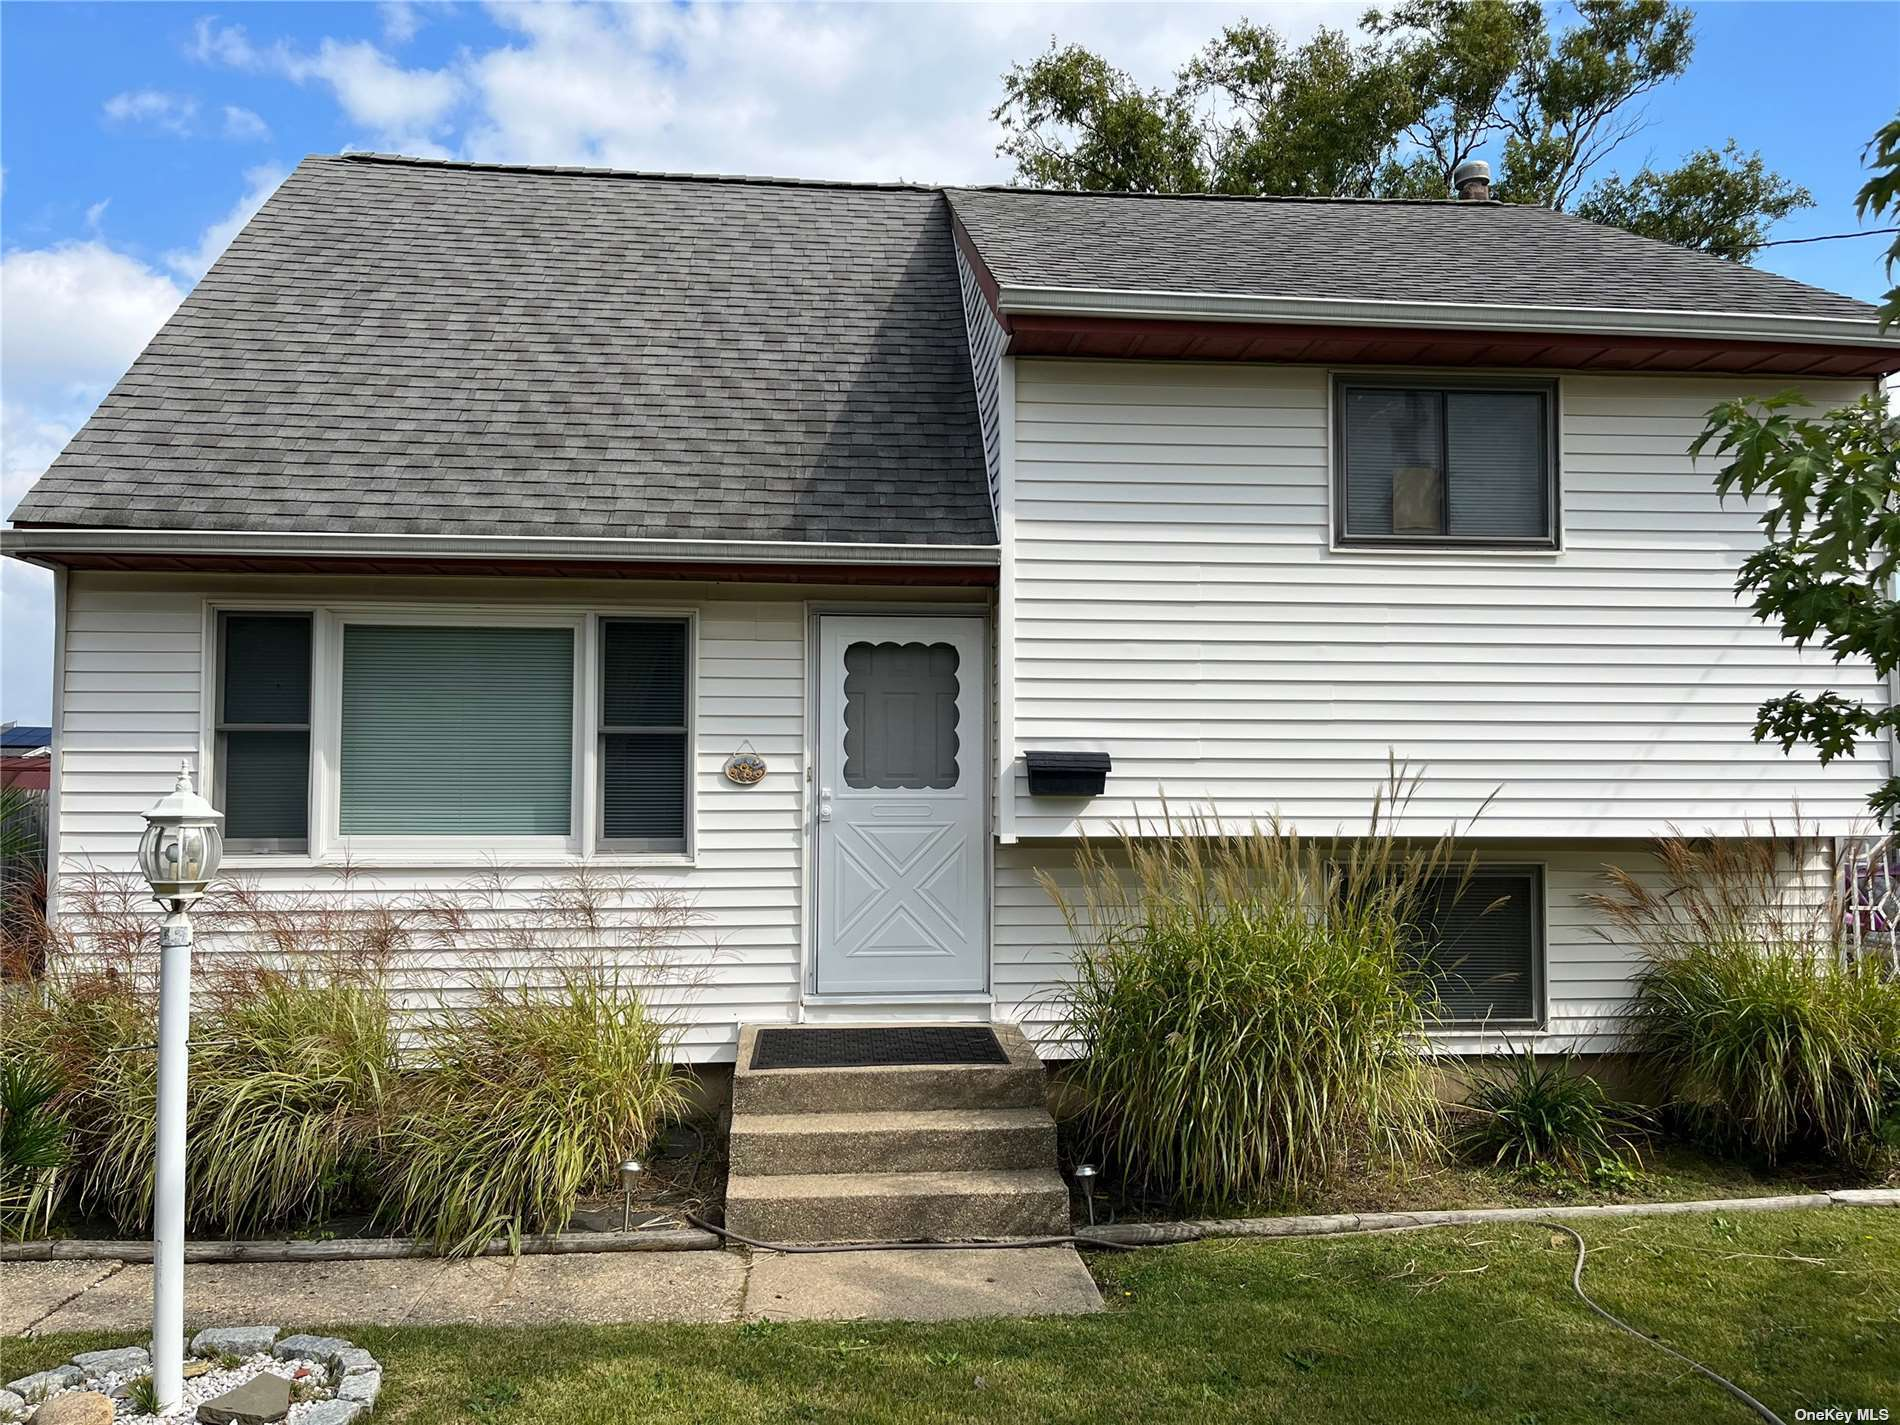 3 Bedroom, 1 1/2 bathroom home in Copiague. Move right into this beautifully done 3 bedroom, 1 1/2 bathroom split level. Gleaming oak floors through dining room and kitchen. Updated appliances. Tile floors in sun room and den/office. Canal is approx 80' wide. Room for up to a 50' boat.